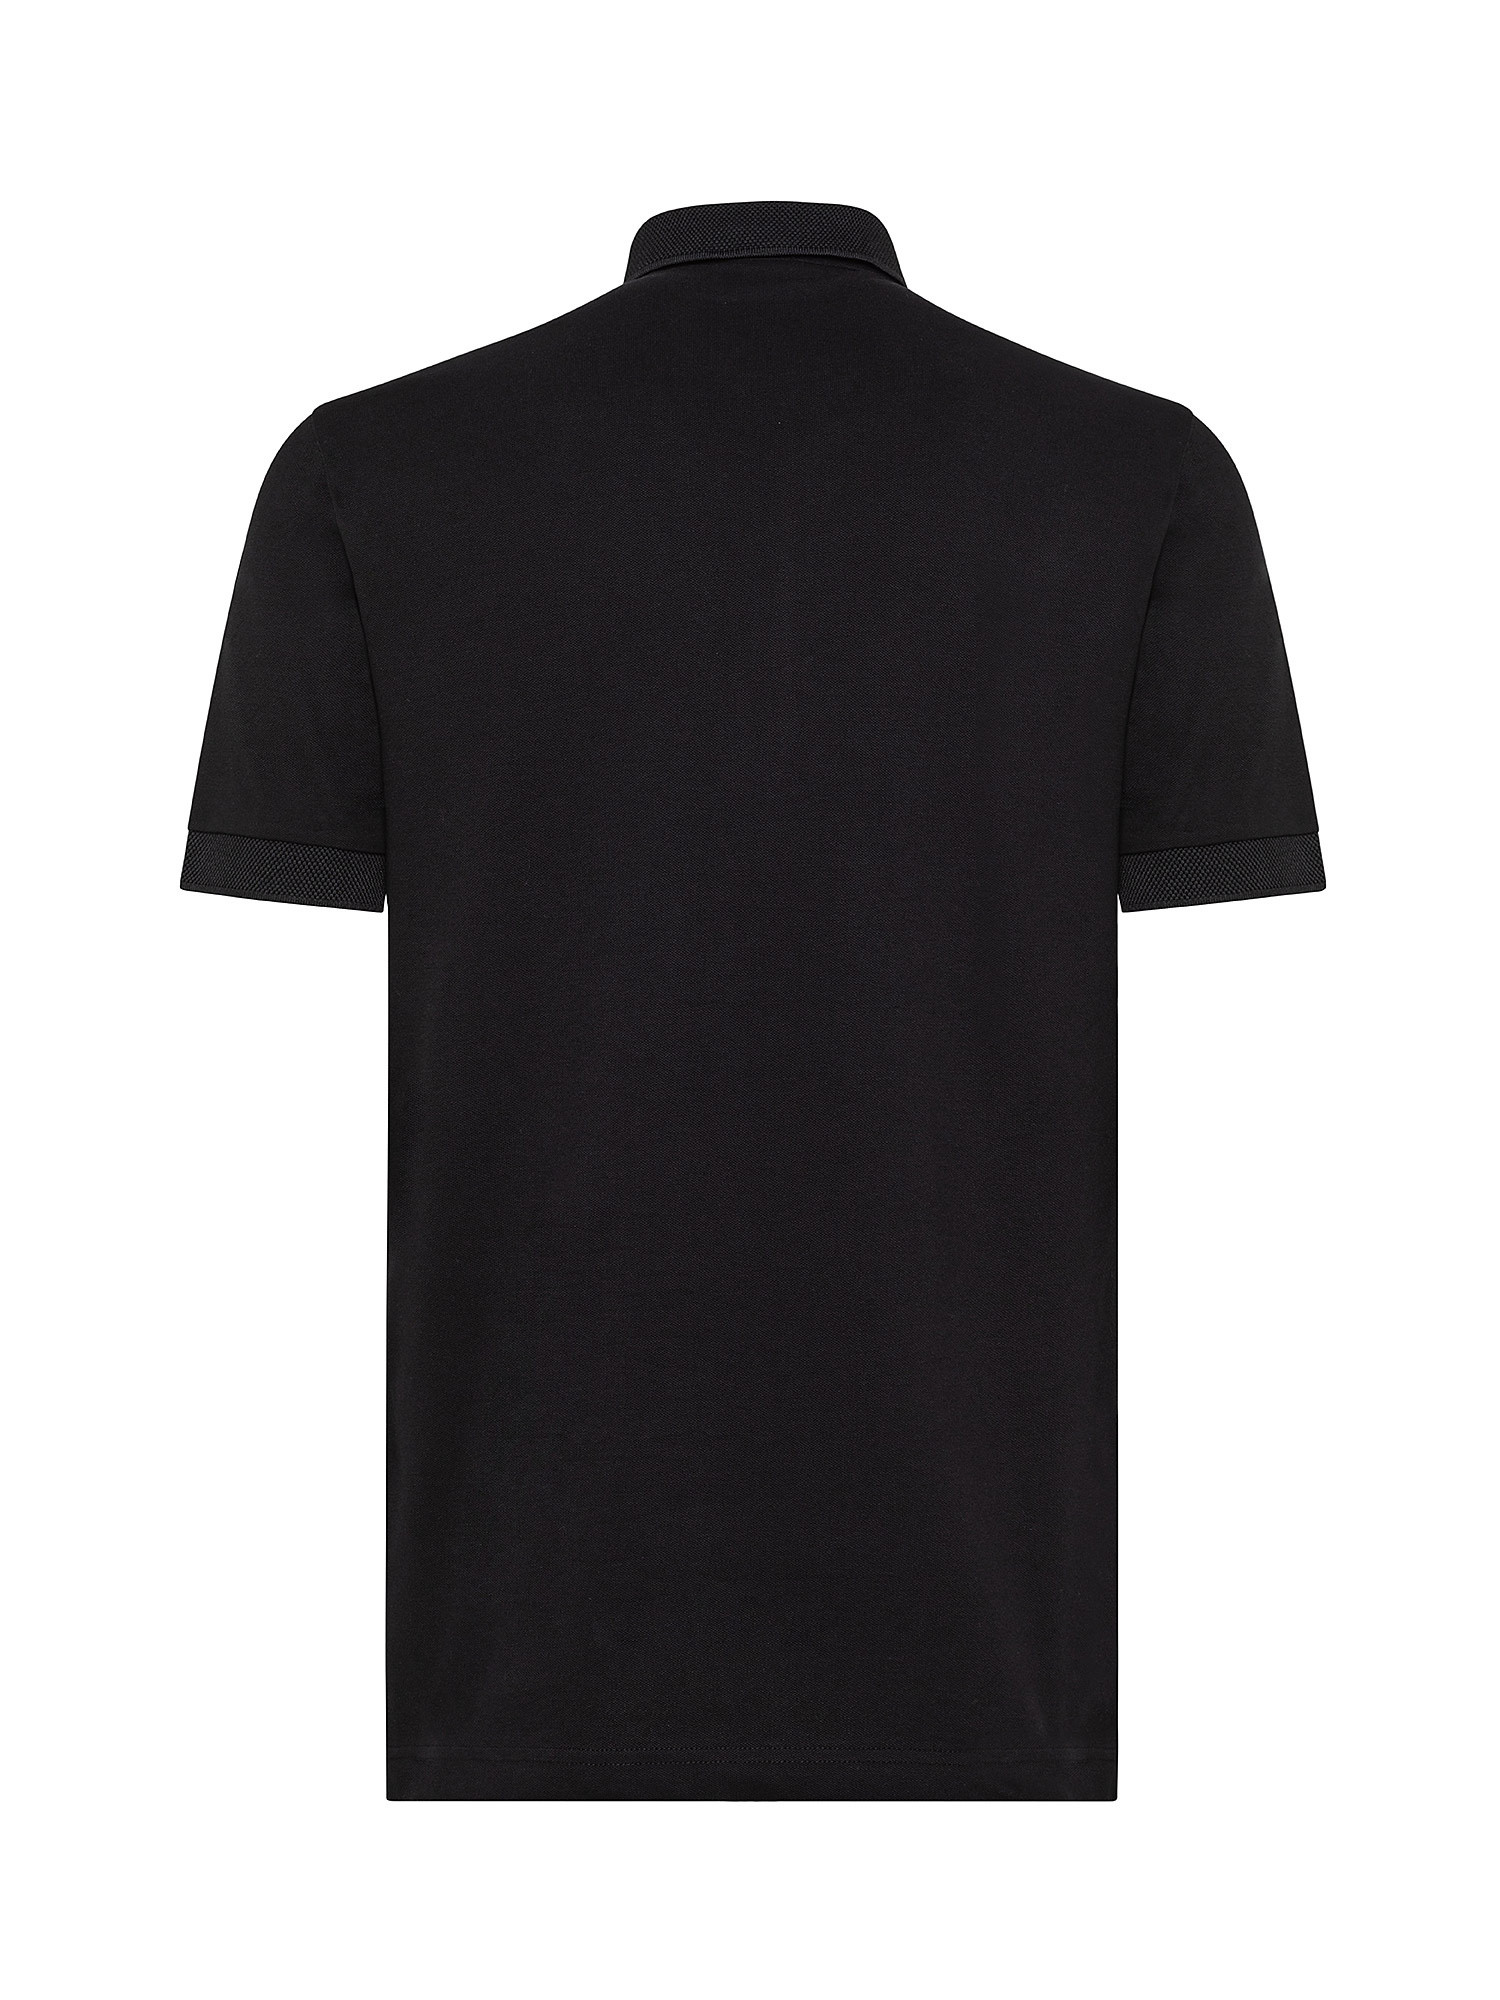 Polo stretch, Nero, large image number 1